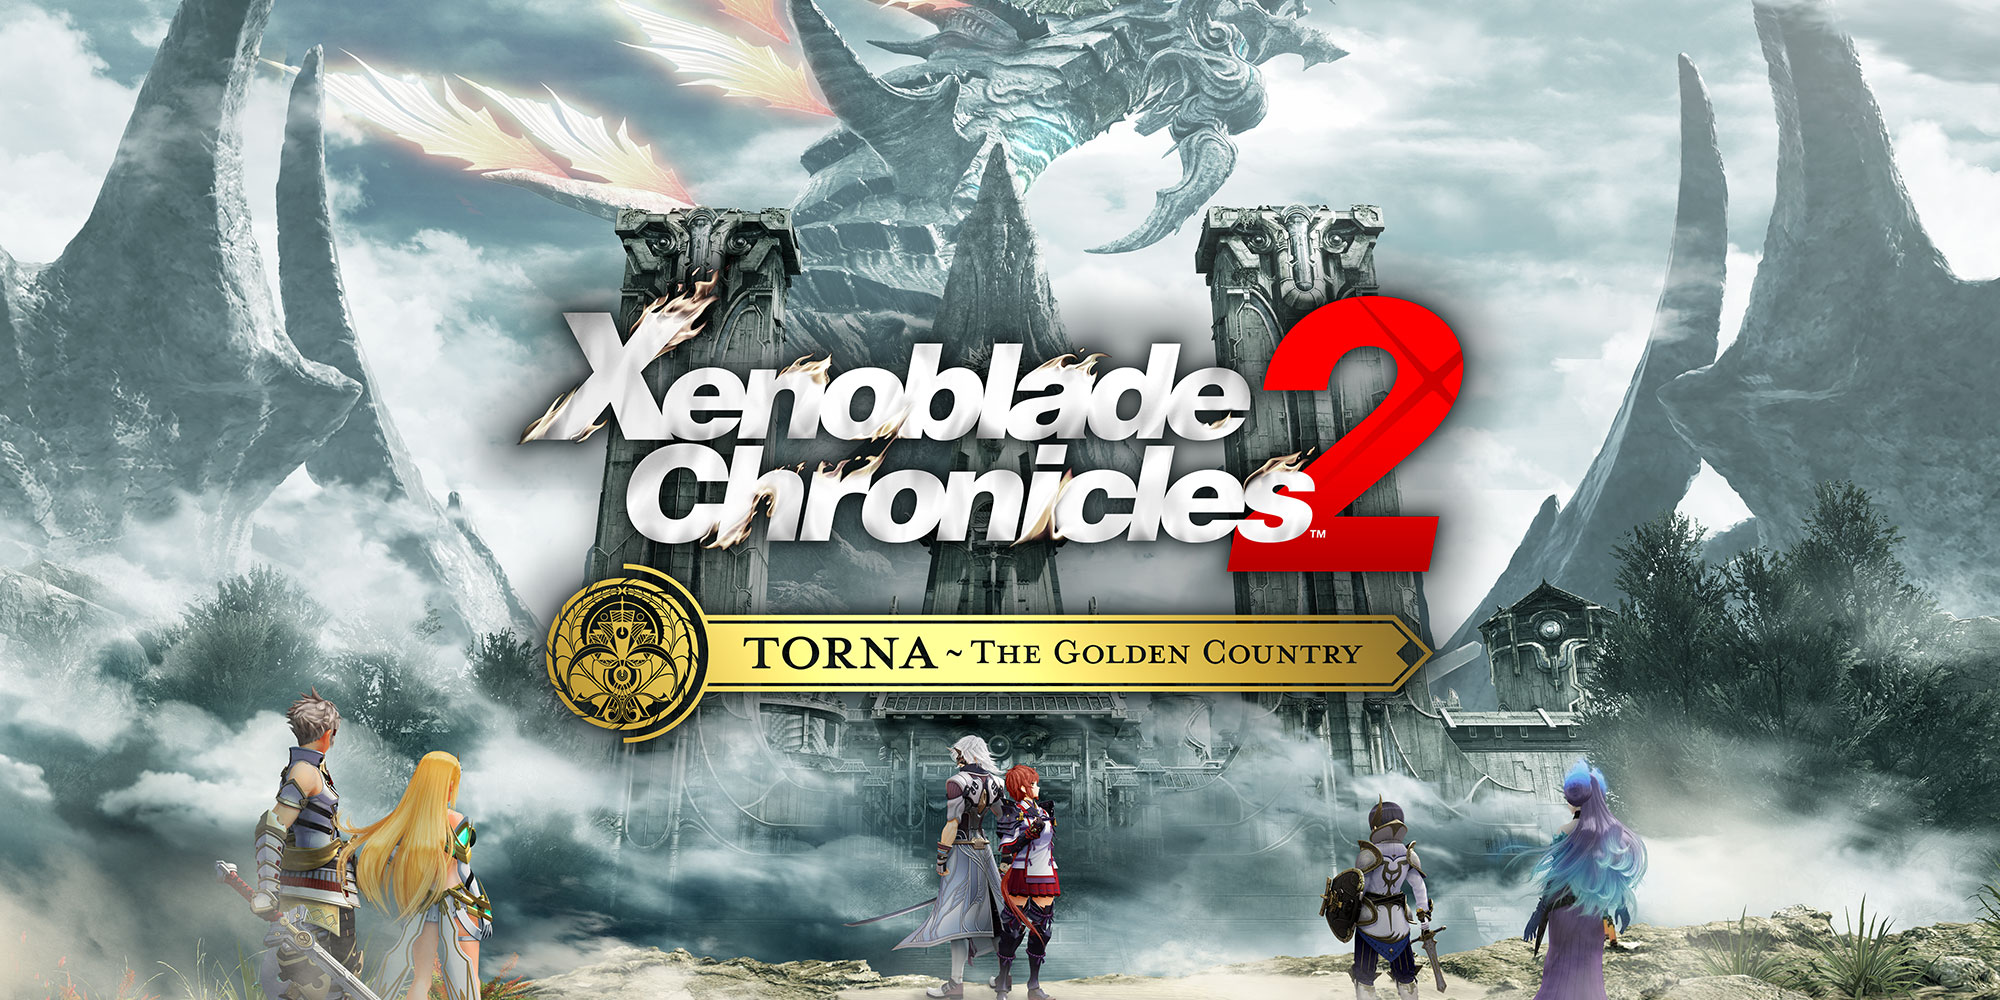 REVIEW – Xenoblade Chronicles 2: Torna ~ The Golden Country